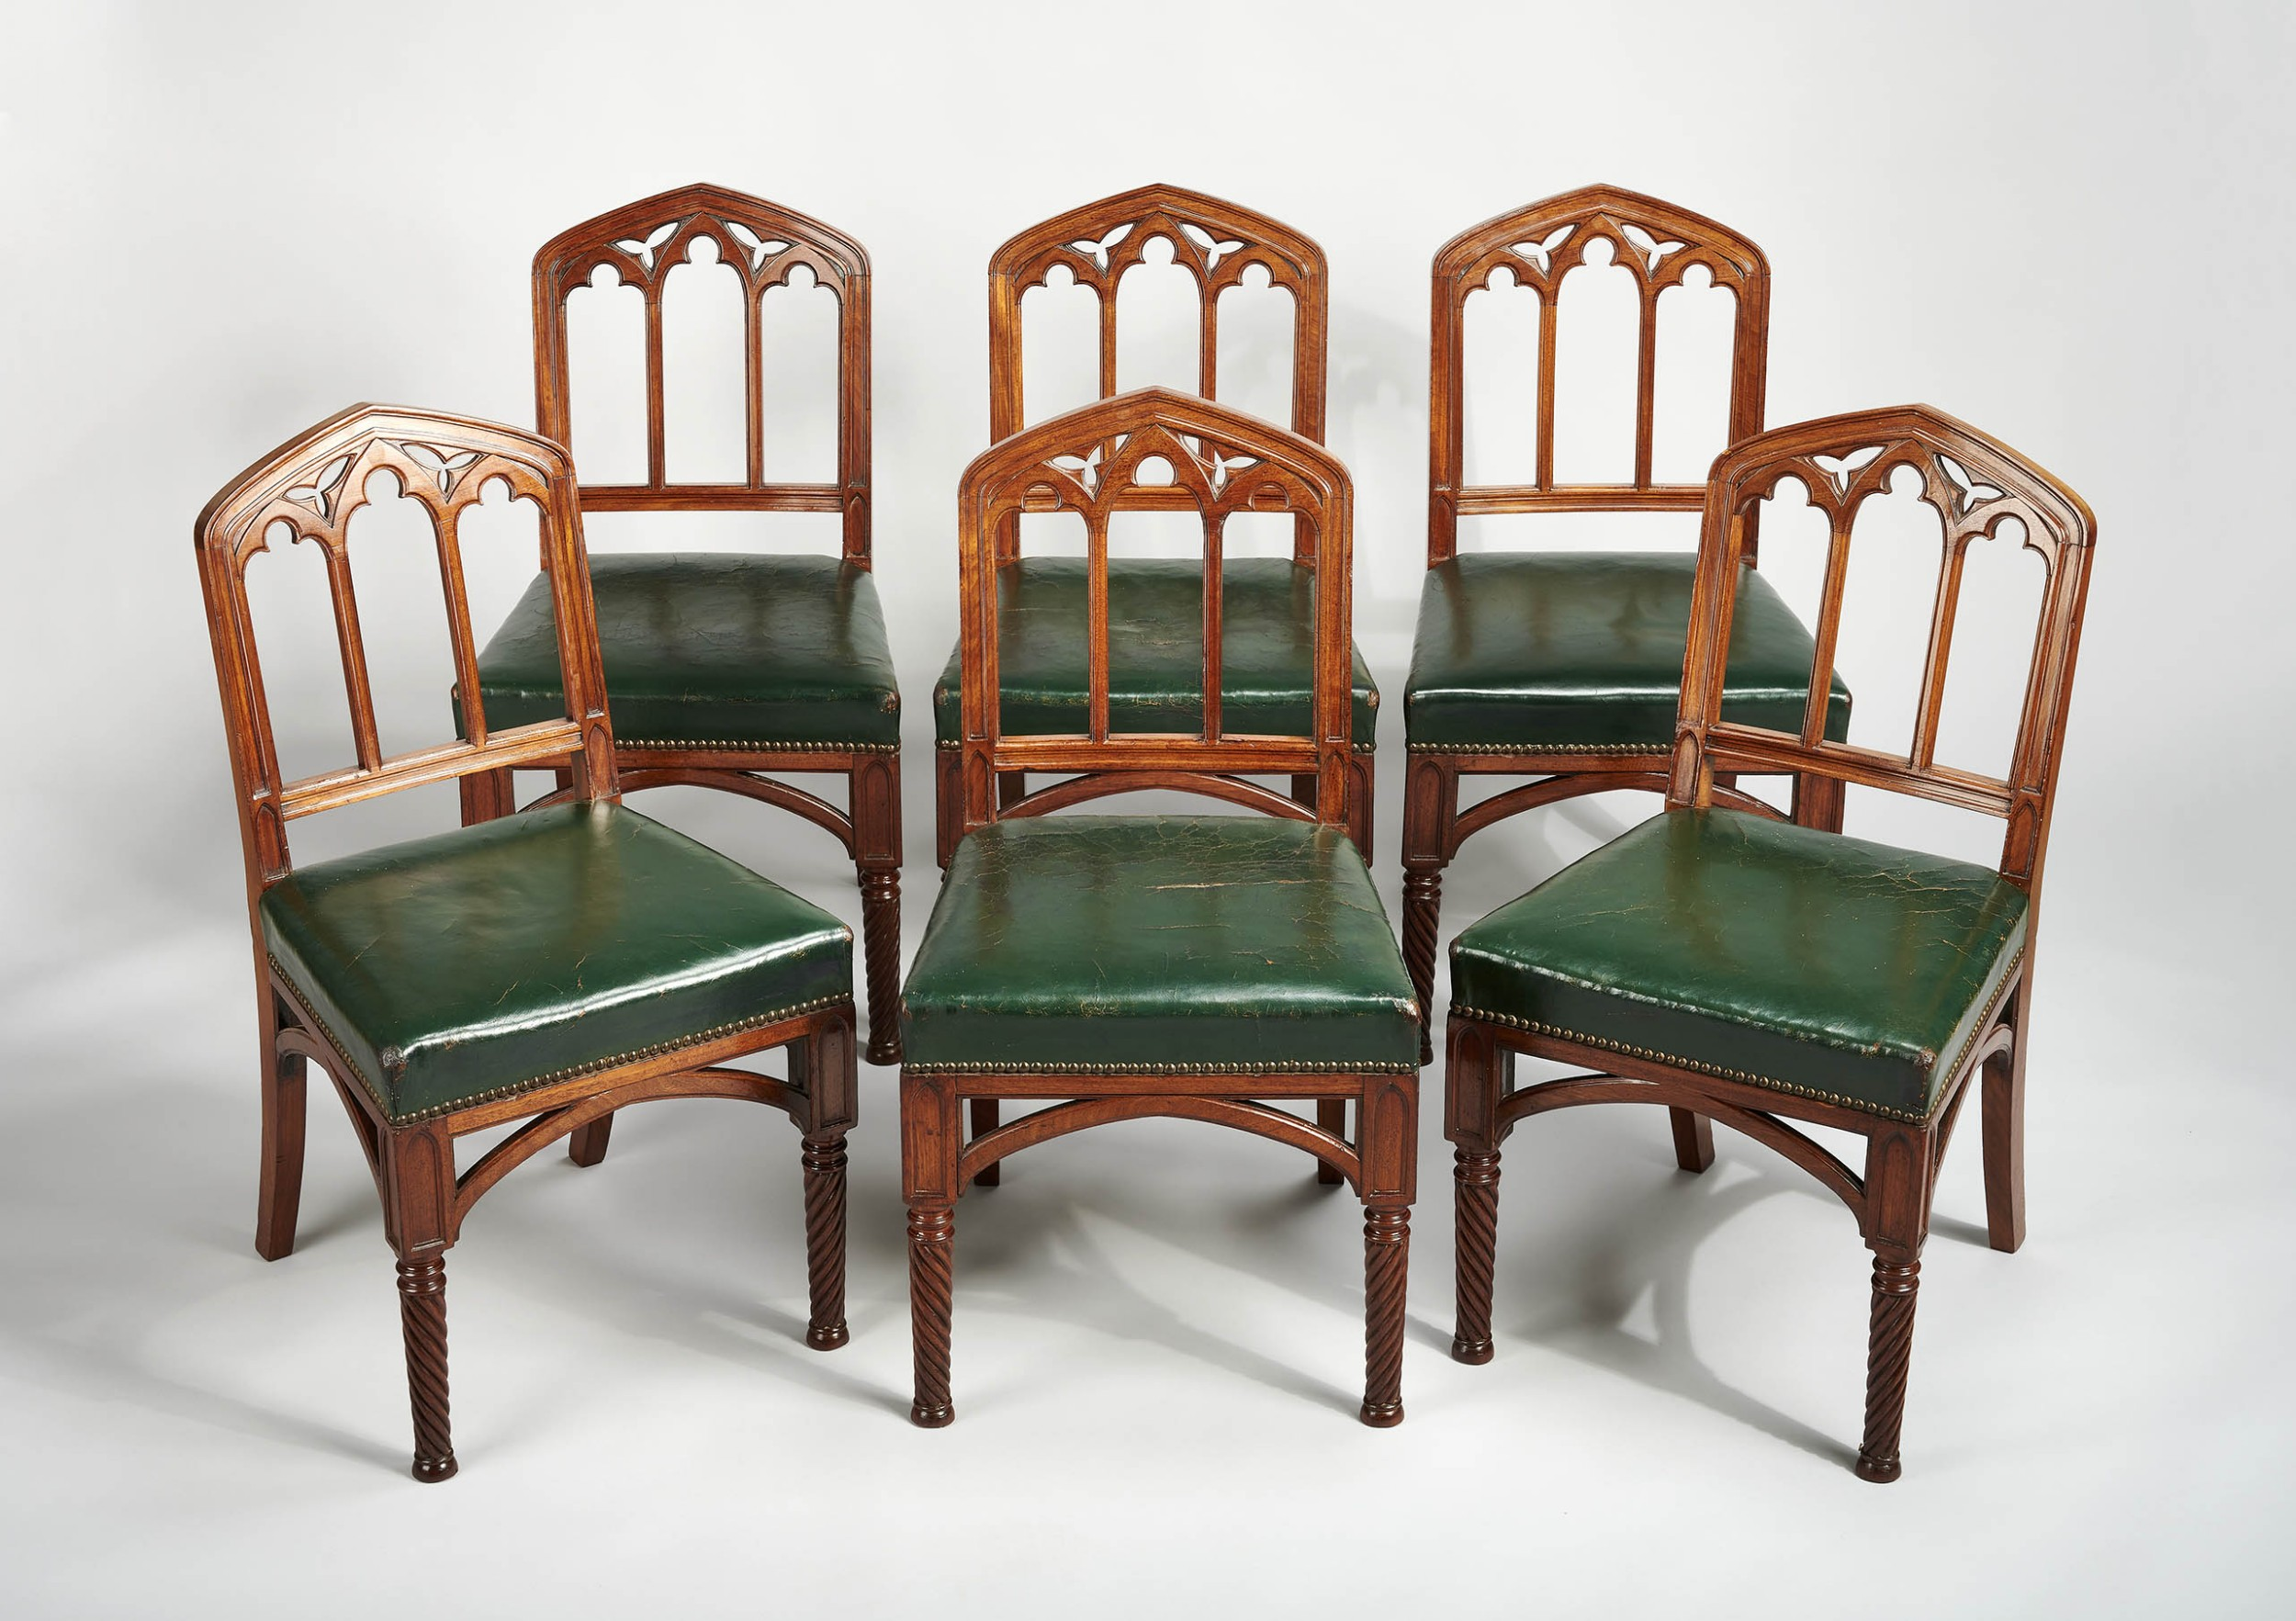 fine and rare set of six regency mahogany chairs in the gothic taste